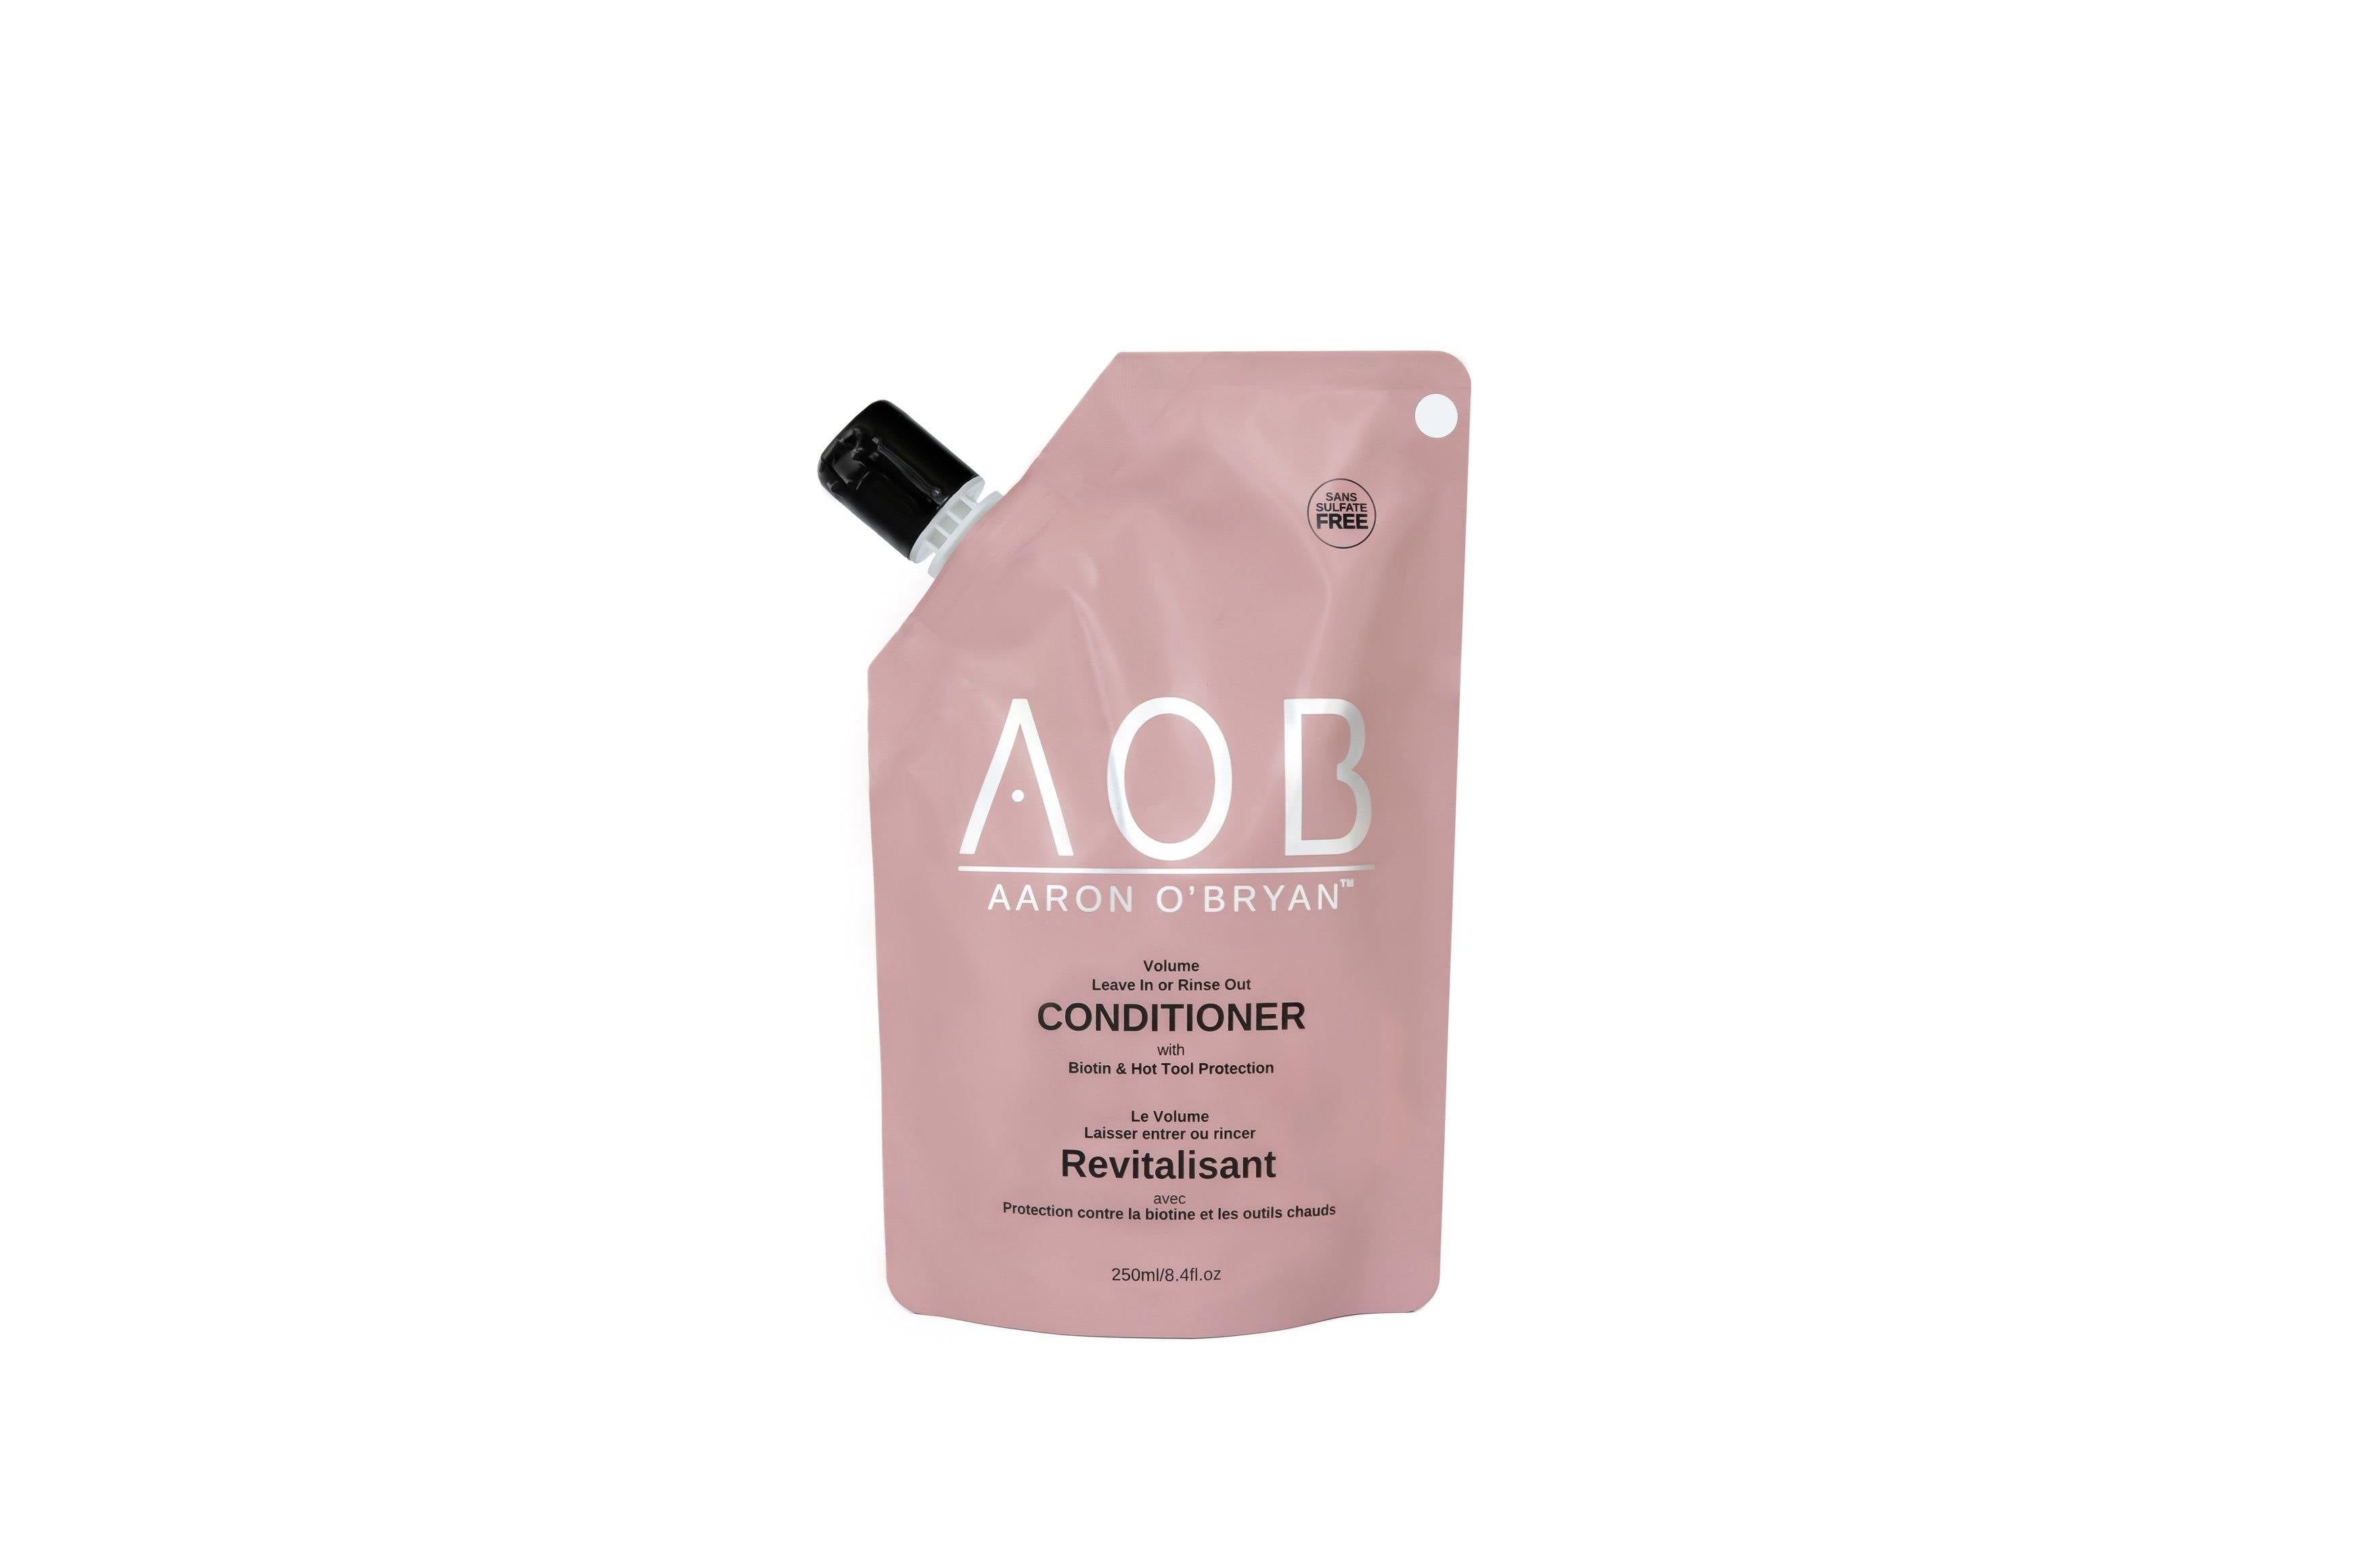 aob volume conditioner